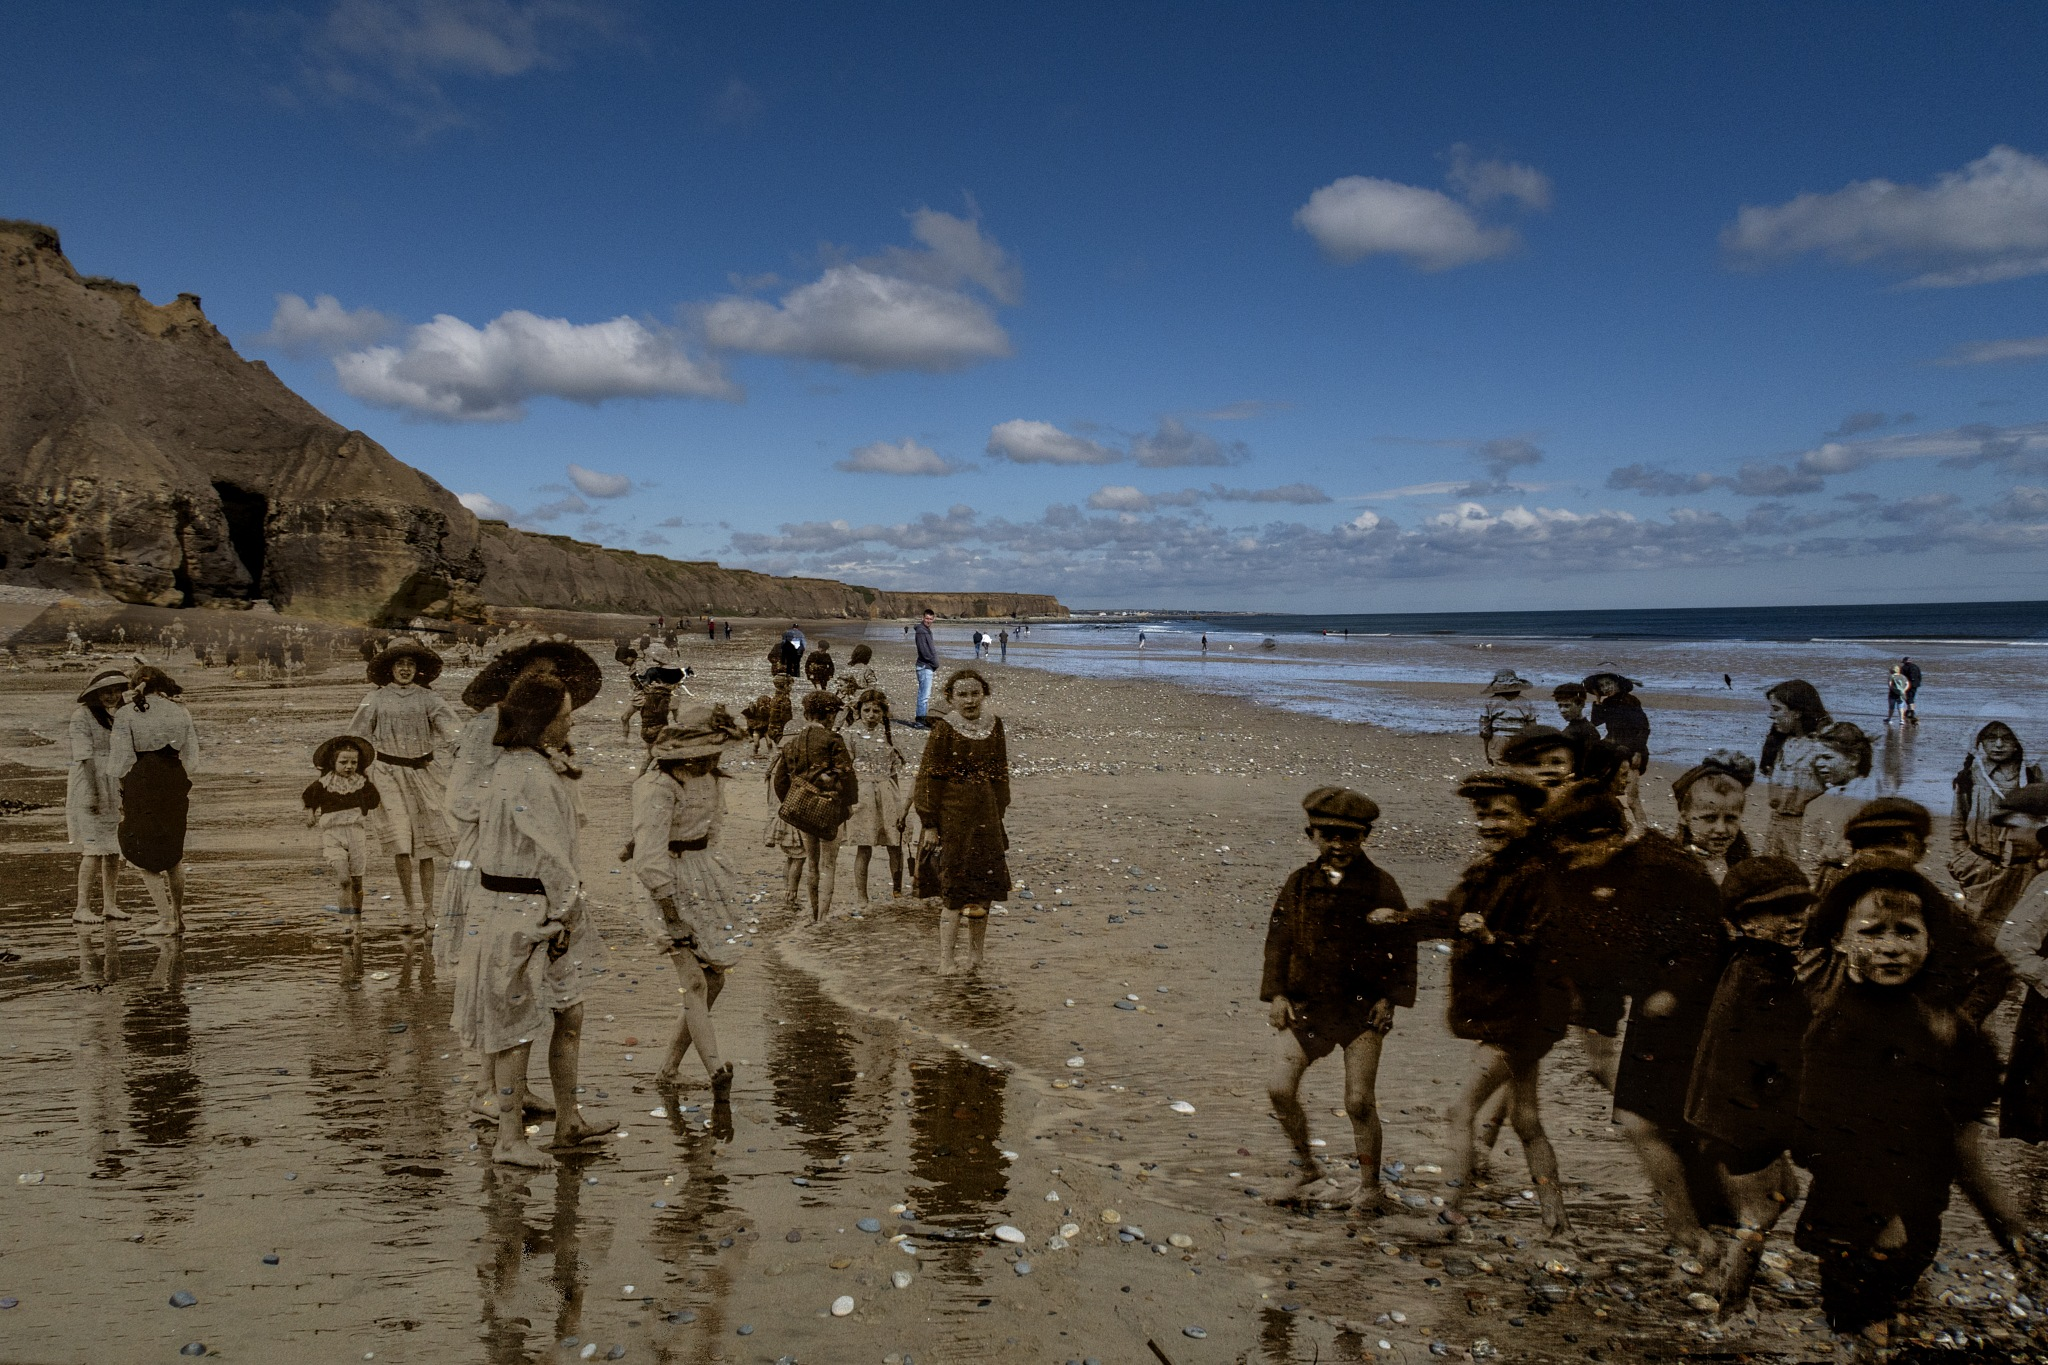 Ghosts from the past enjoying the beach by ianmpeele